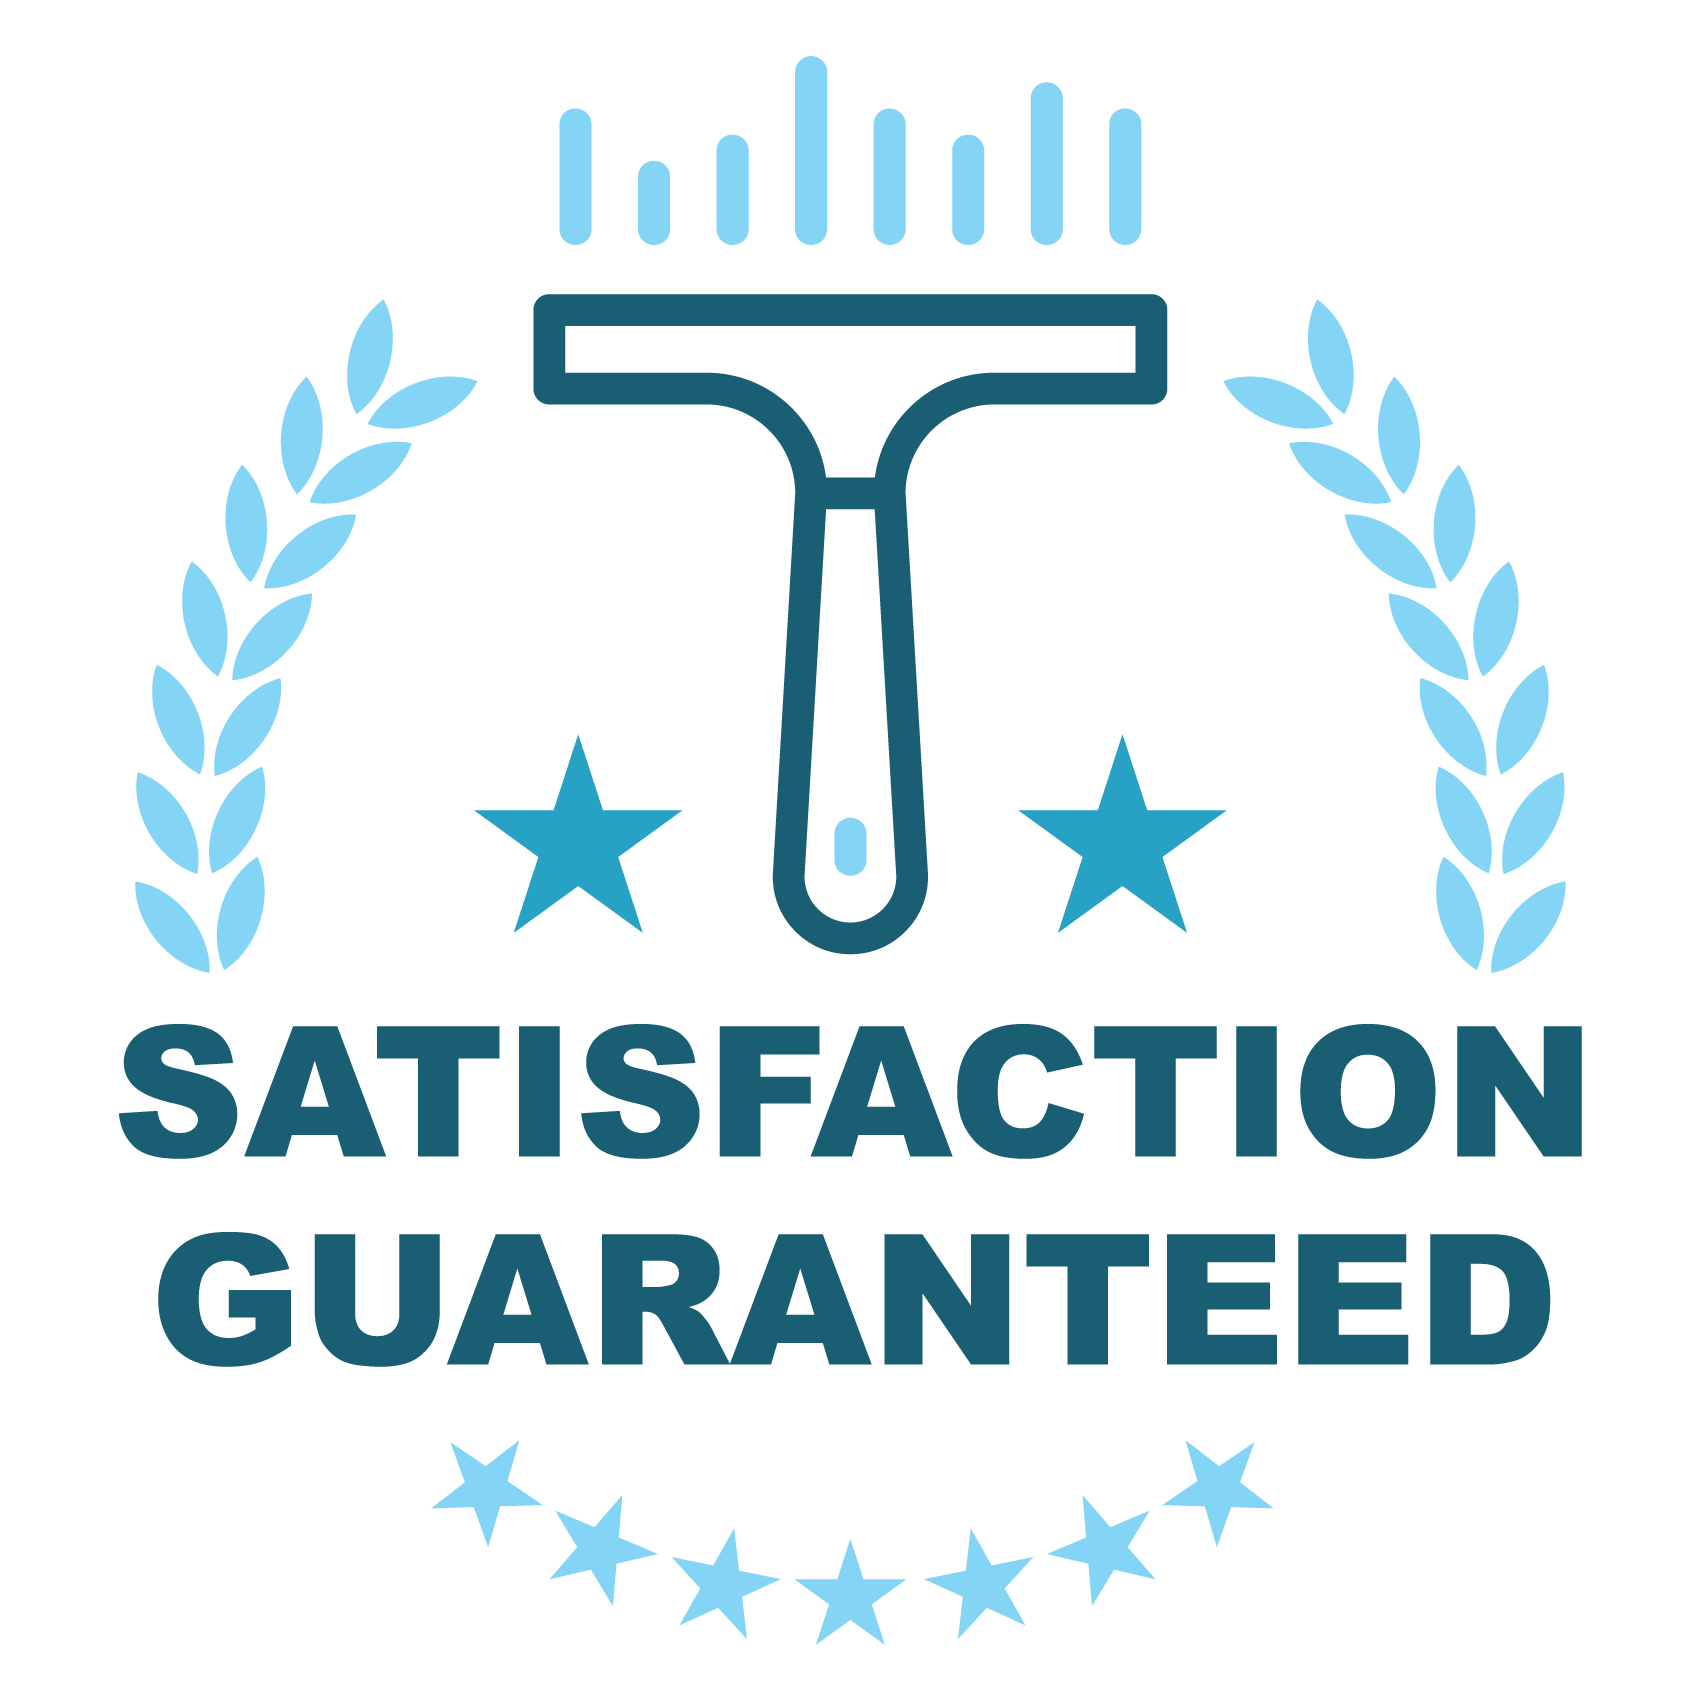 absolutely clean satisfaction guaranteed